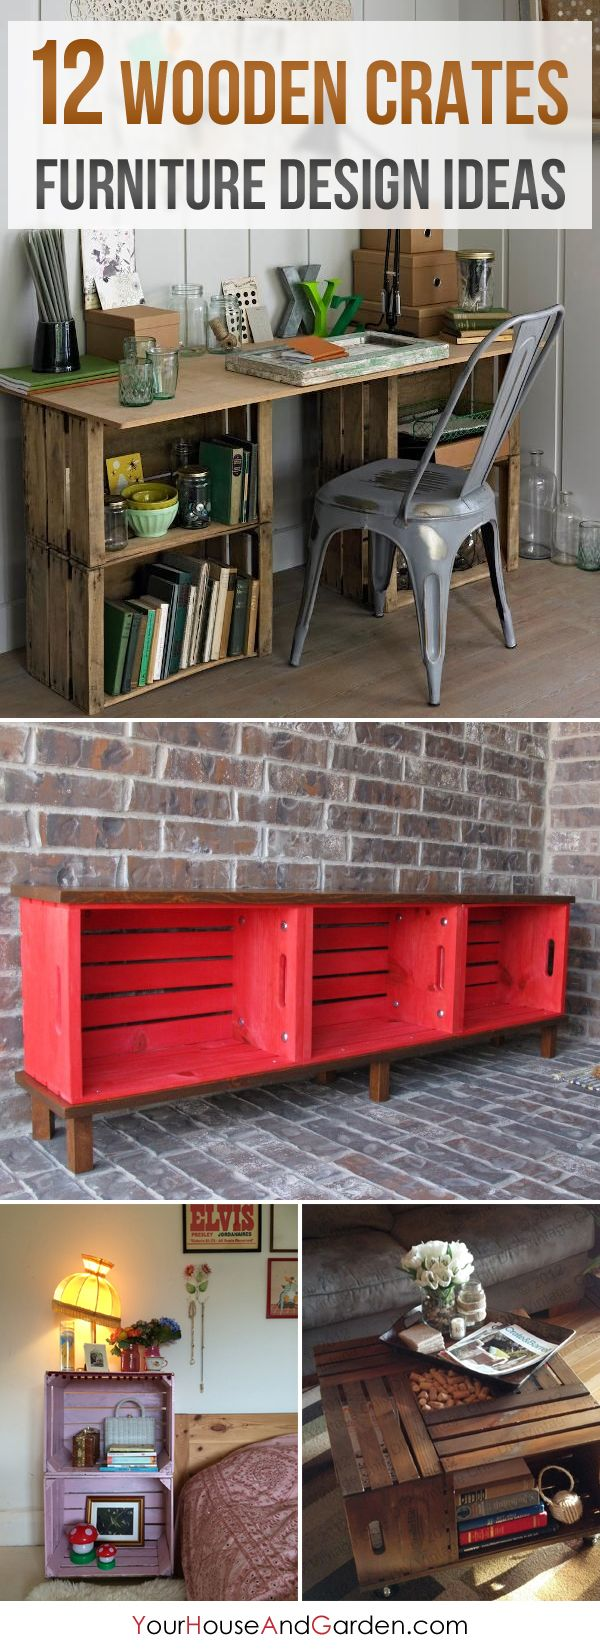 diy crate furniture. 12 Amazing Wooden Crates Furniture Design Ideas - Can Be An Inexpensive Way To Create Almost Anything For The Home Decor. Diy Crate